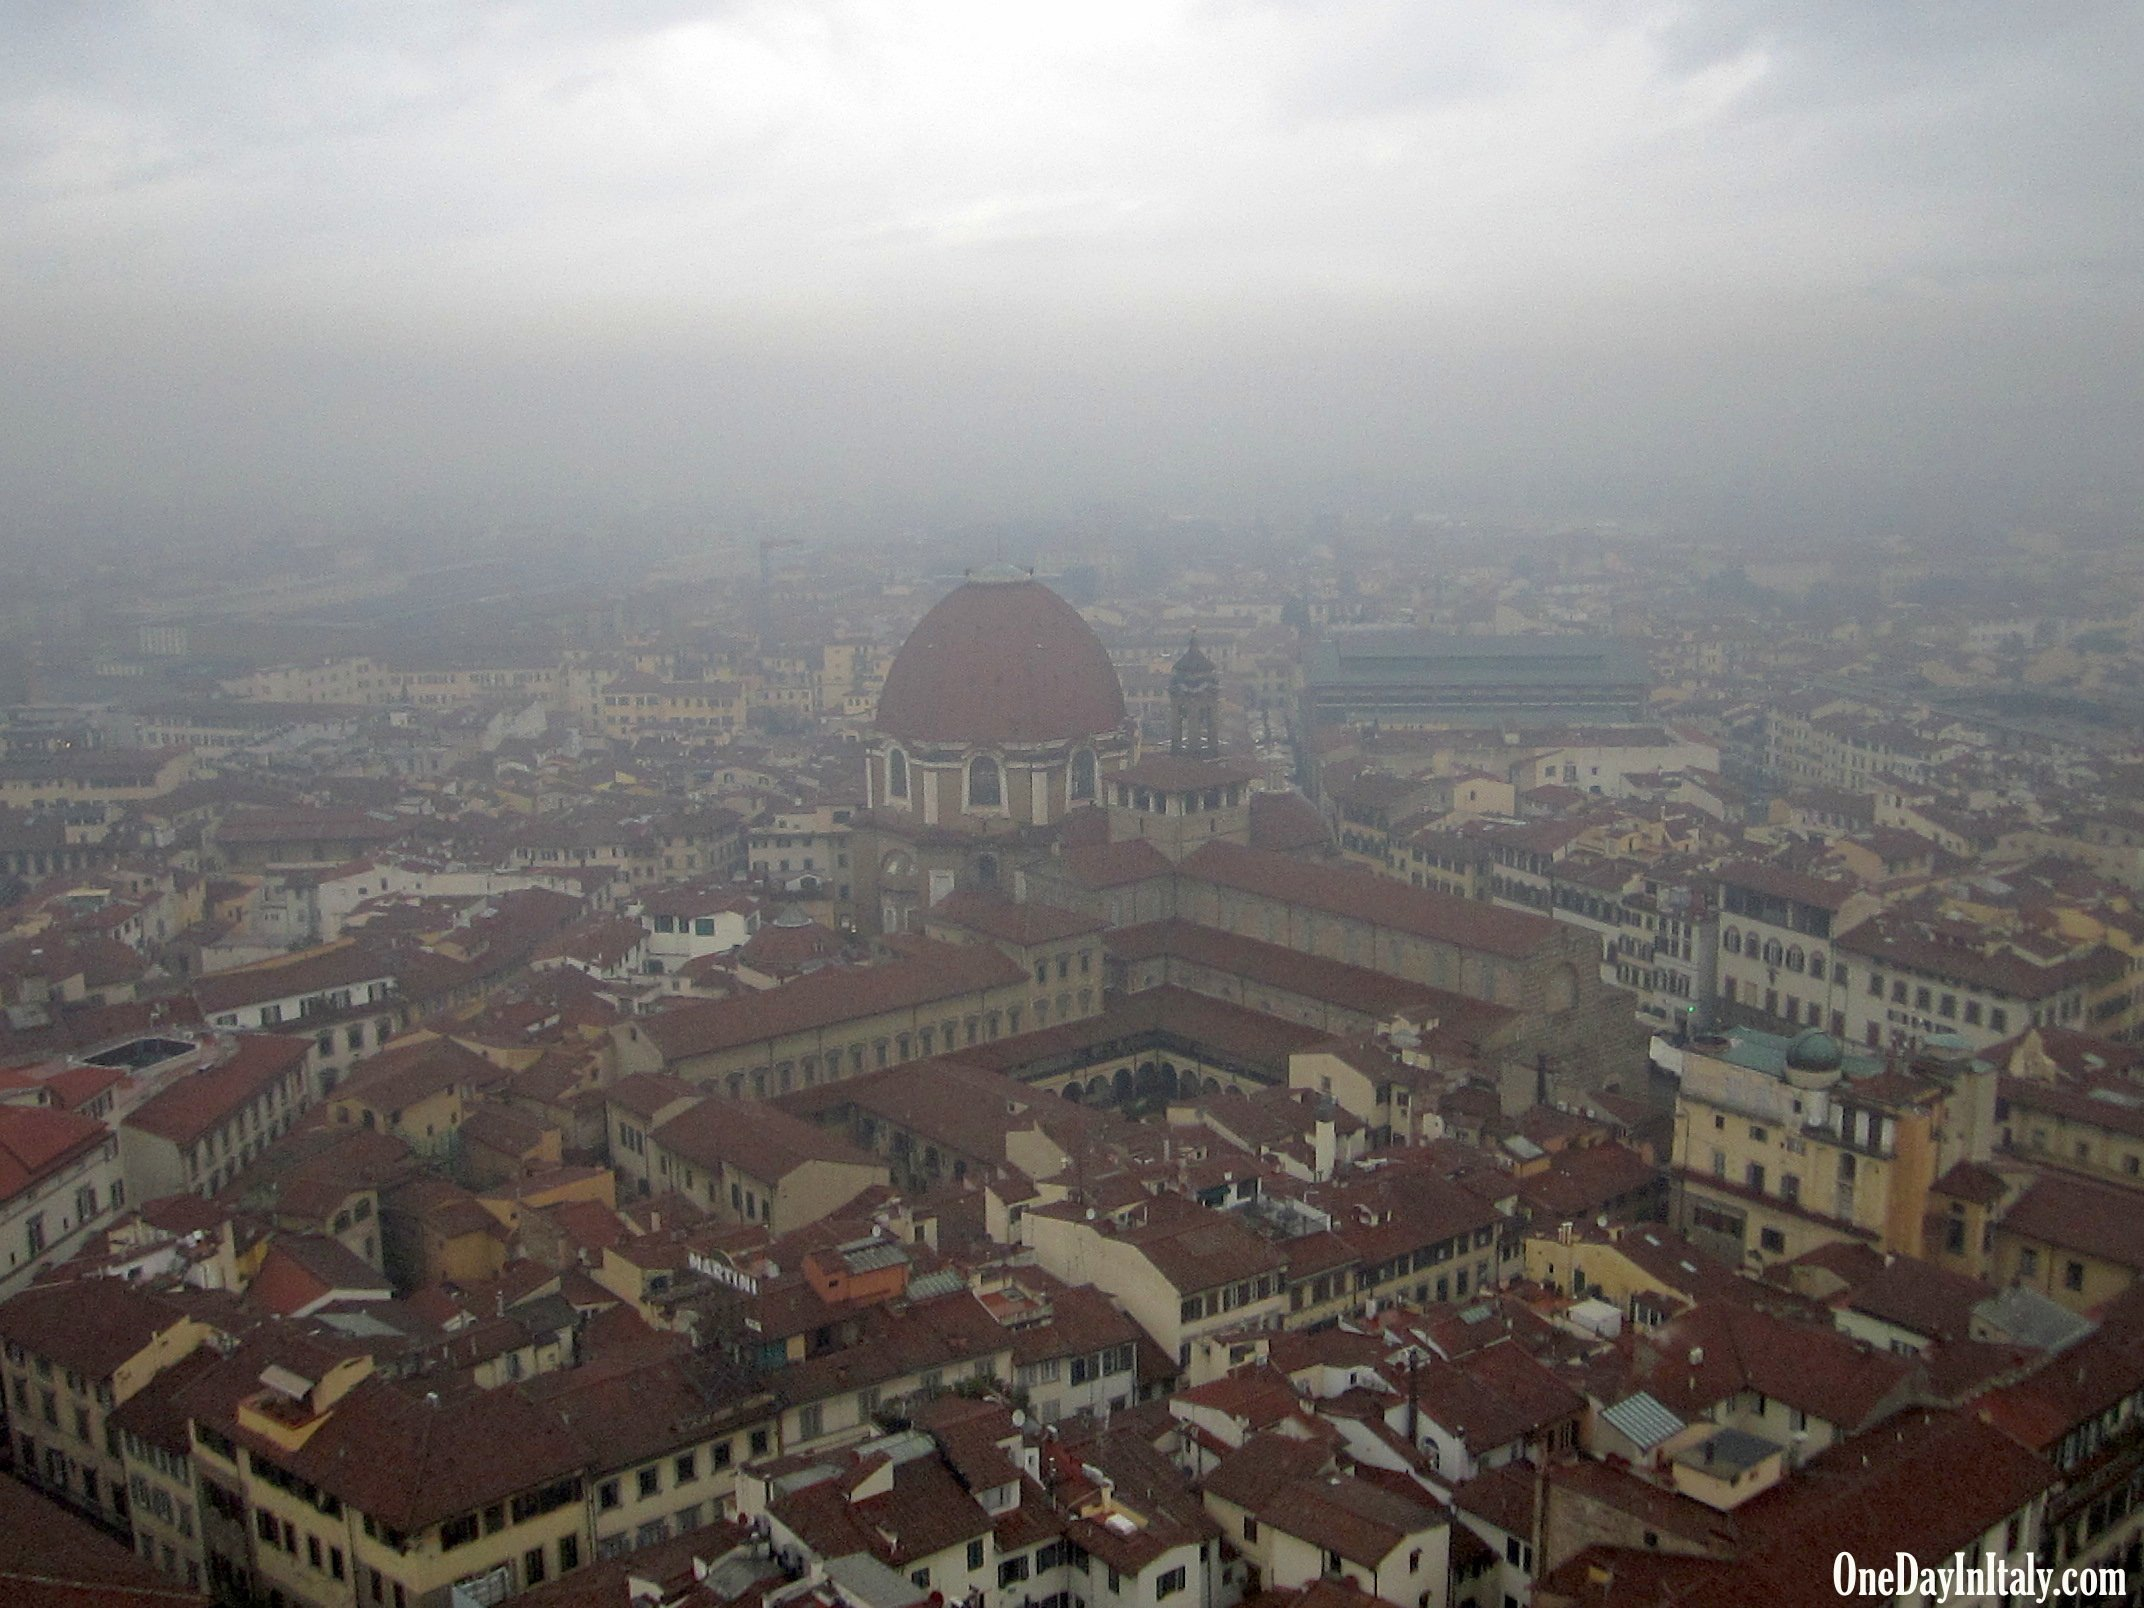 From Giotto's Bell Tower, Florence